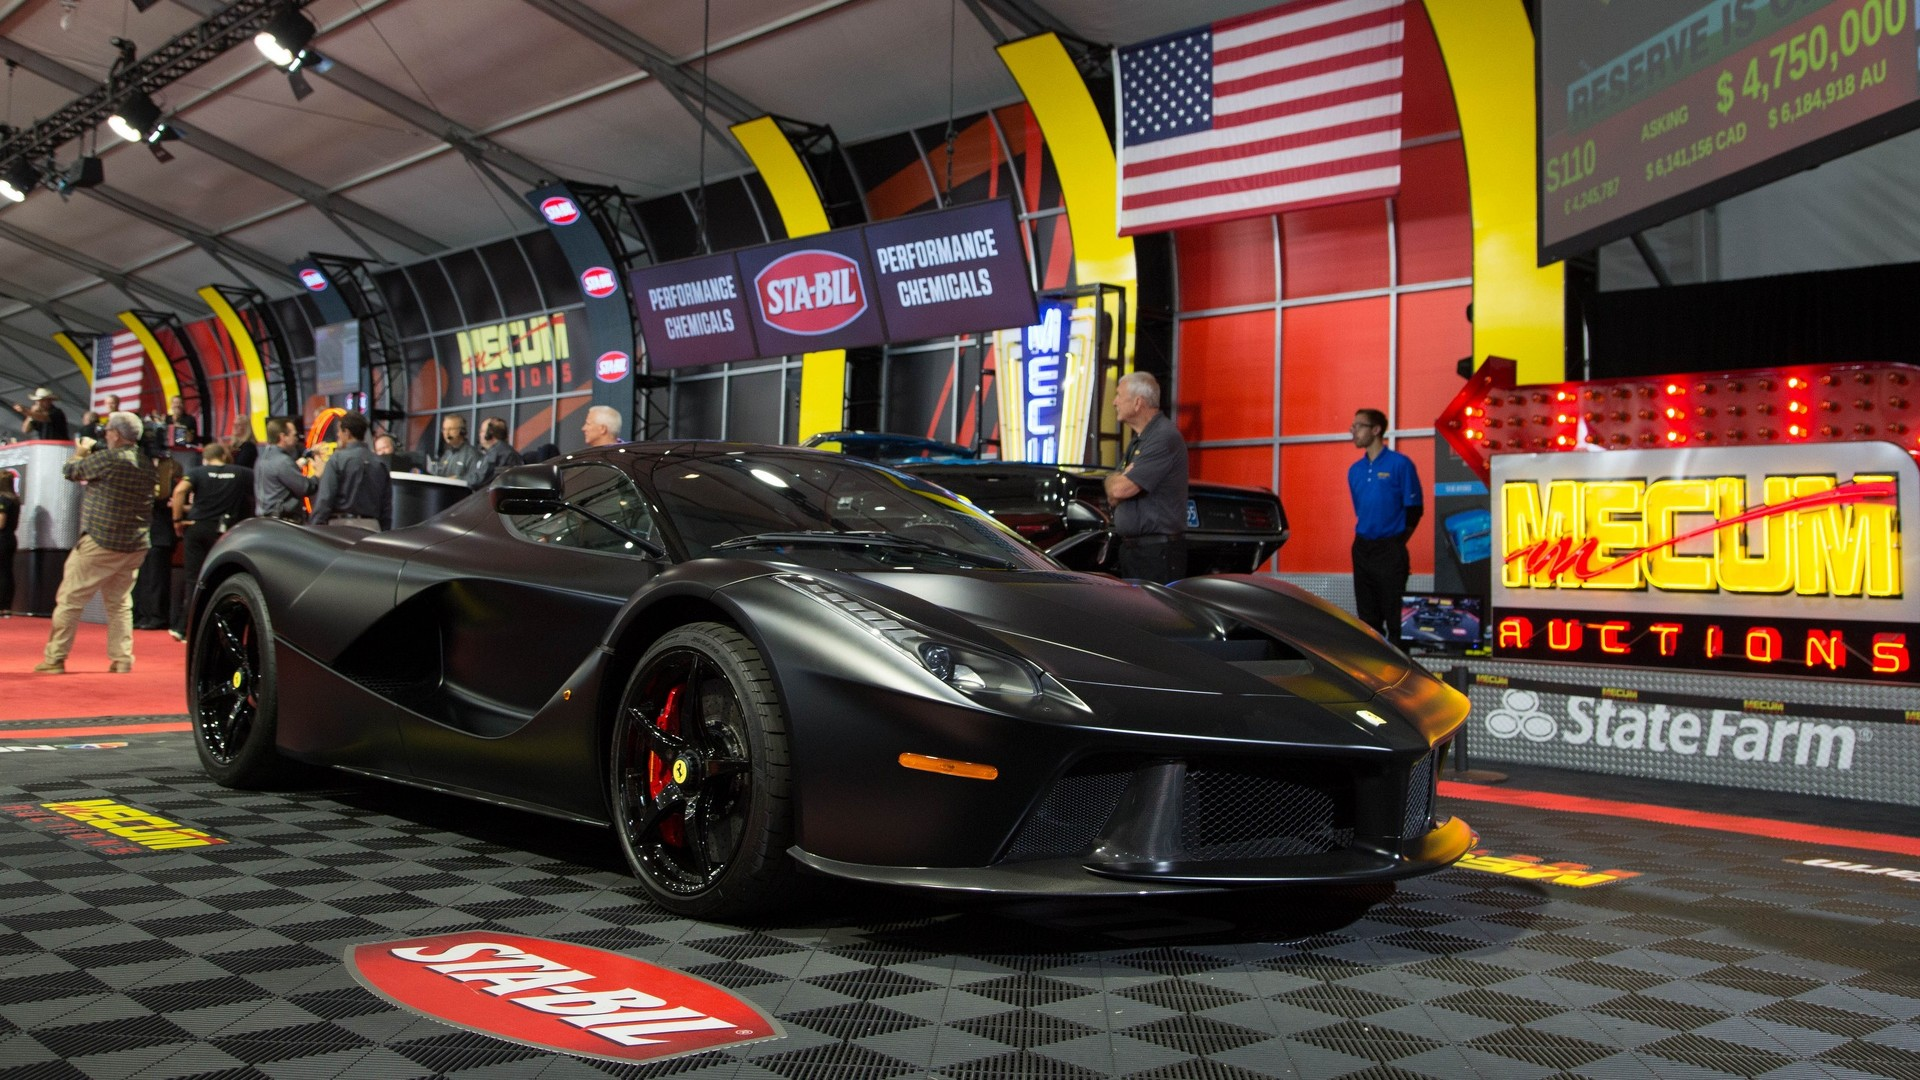 Matte black LaFerrari \u0027horse from hell\u0027 sells for $4.7M at